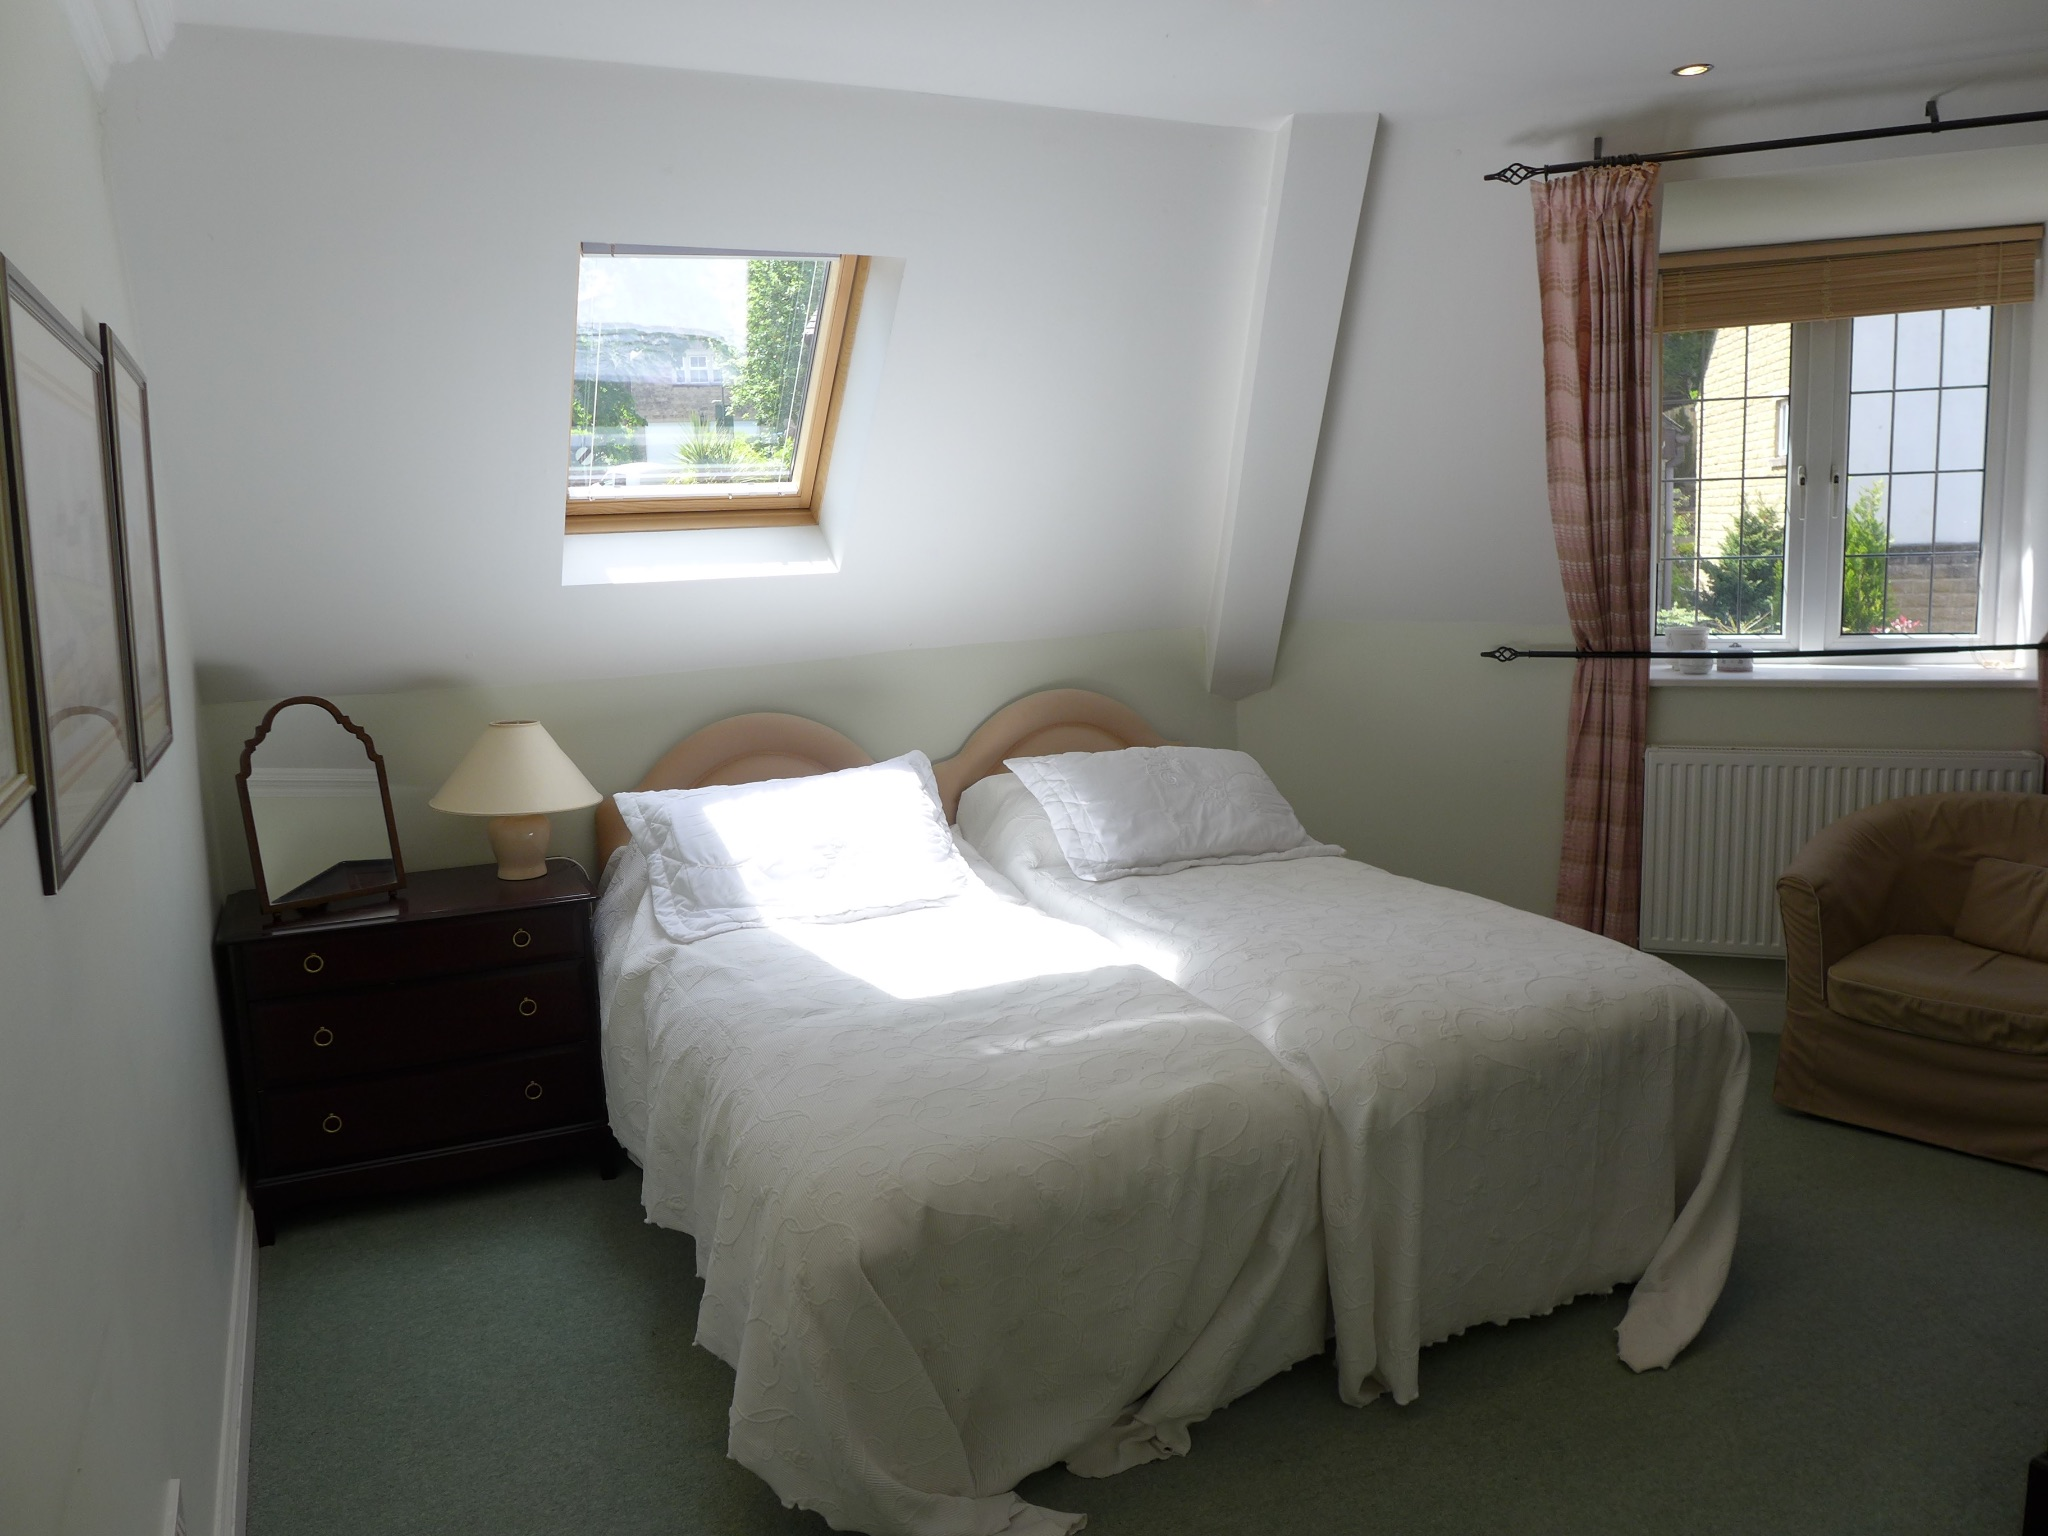 3 bedroom detached house For Sale in Todmorden - Photograph 15.